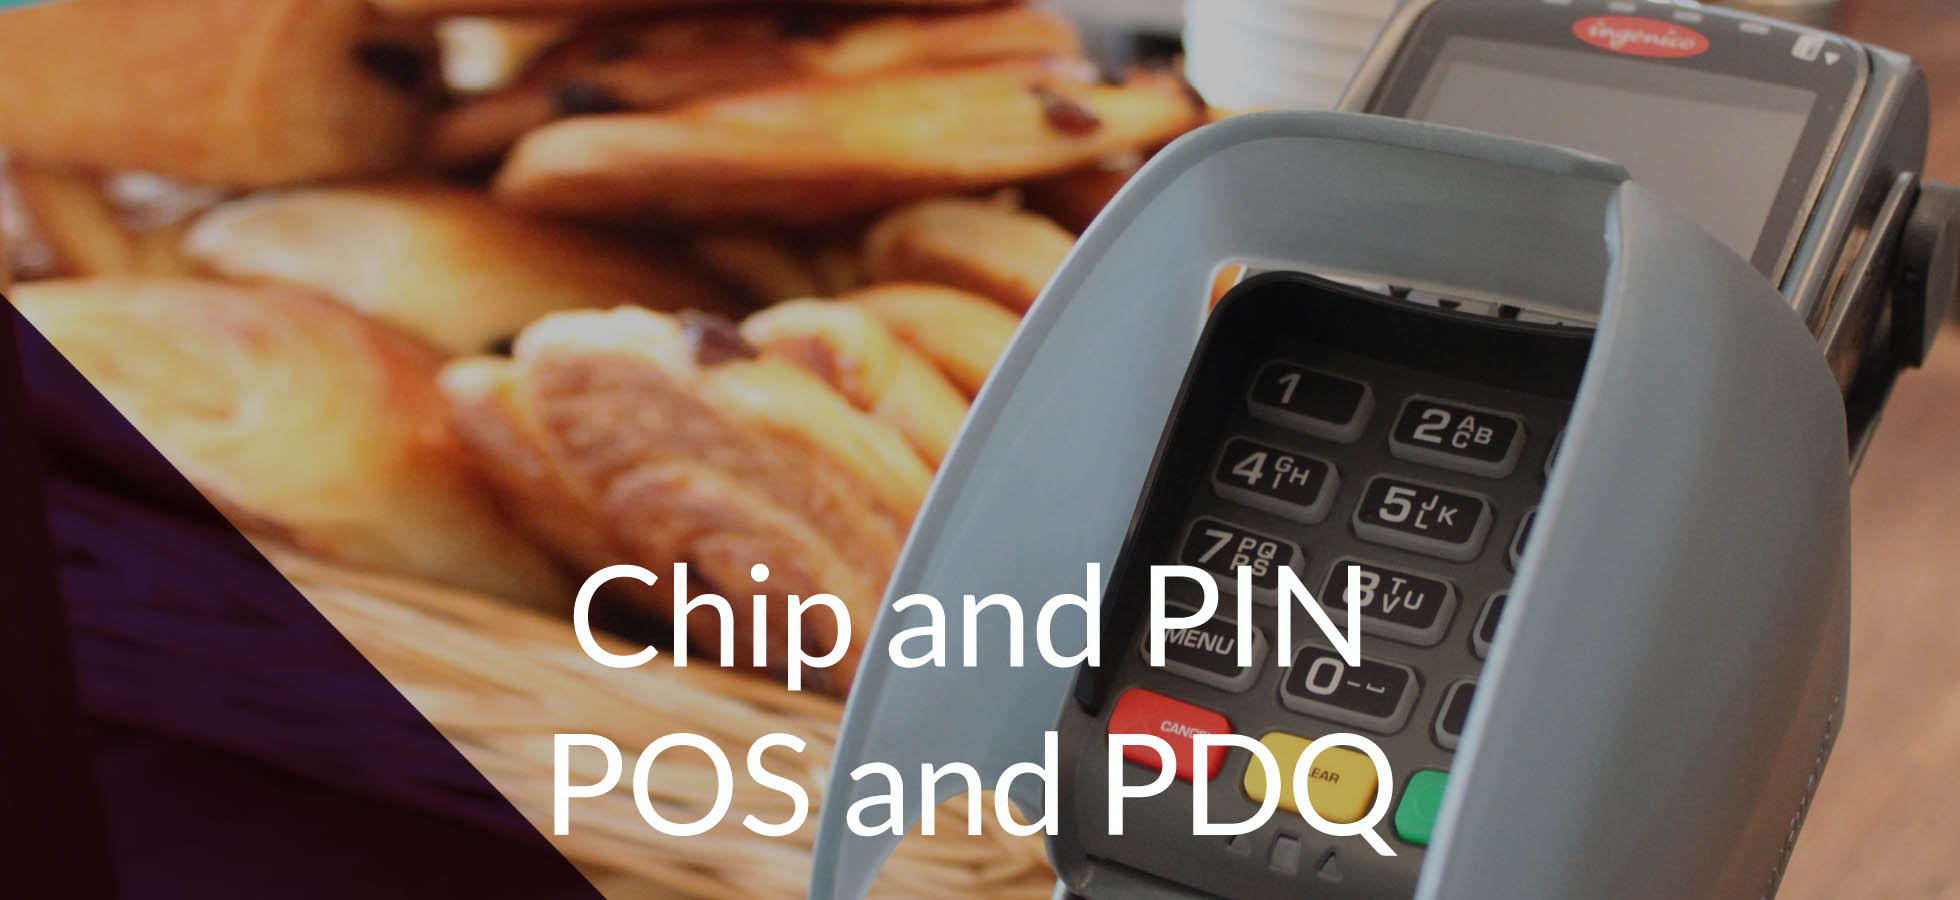 Chip and PIN POS and PDQ pin shields